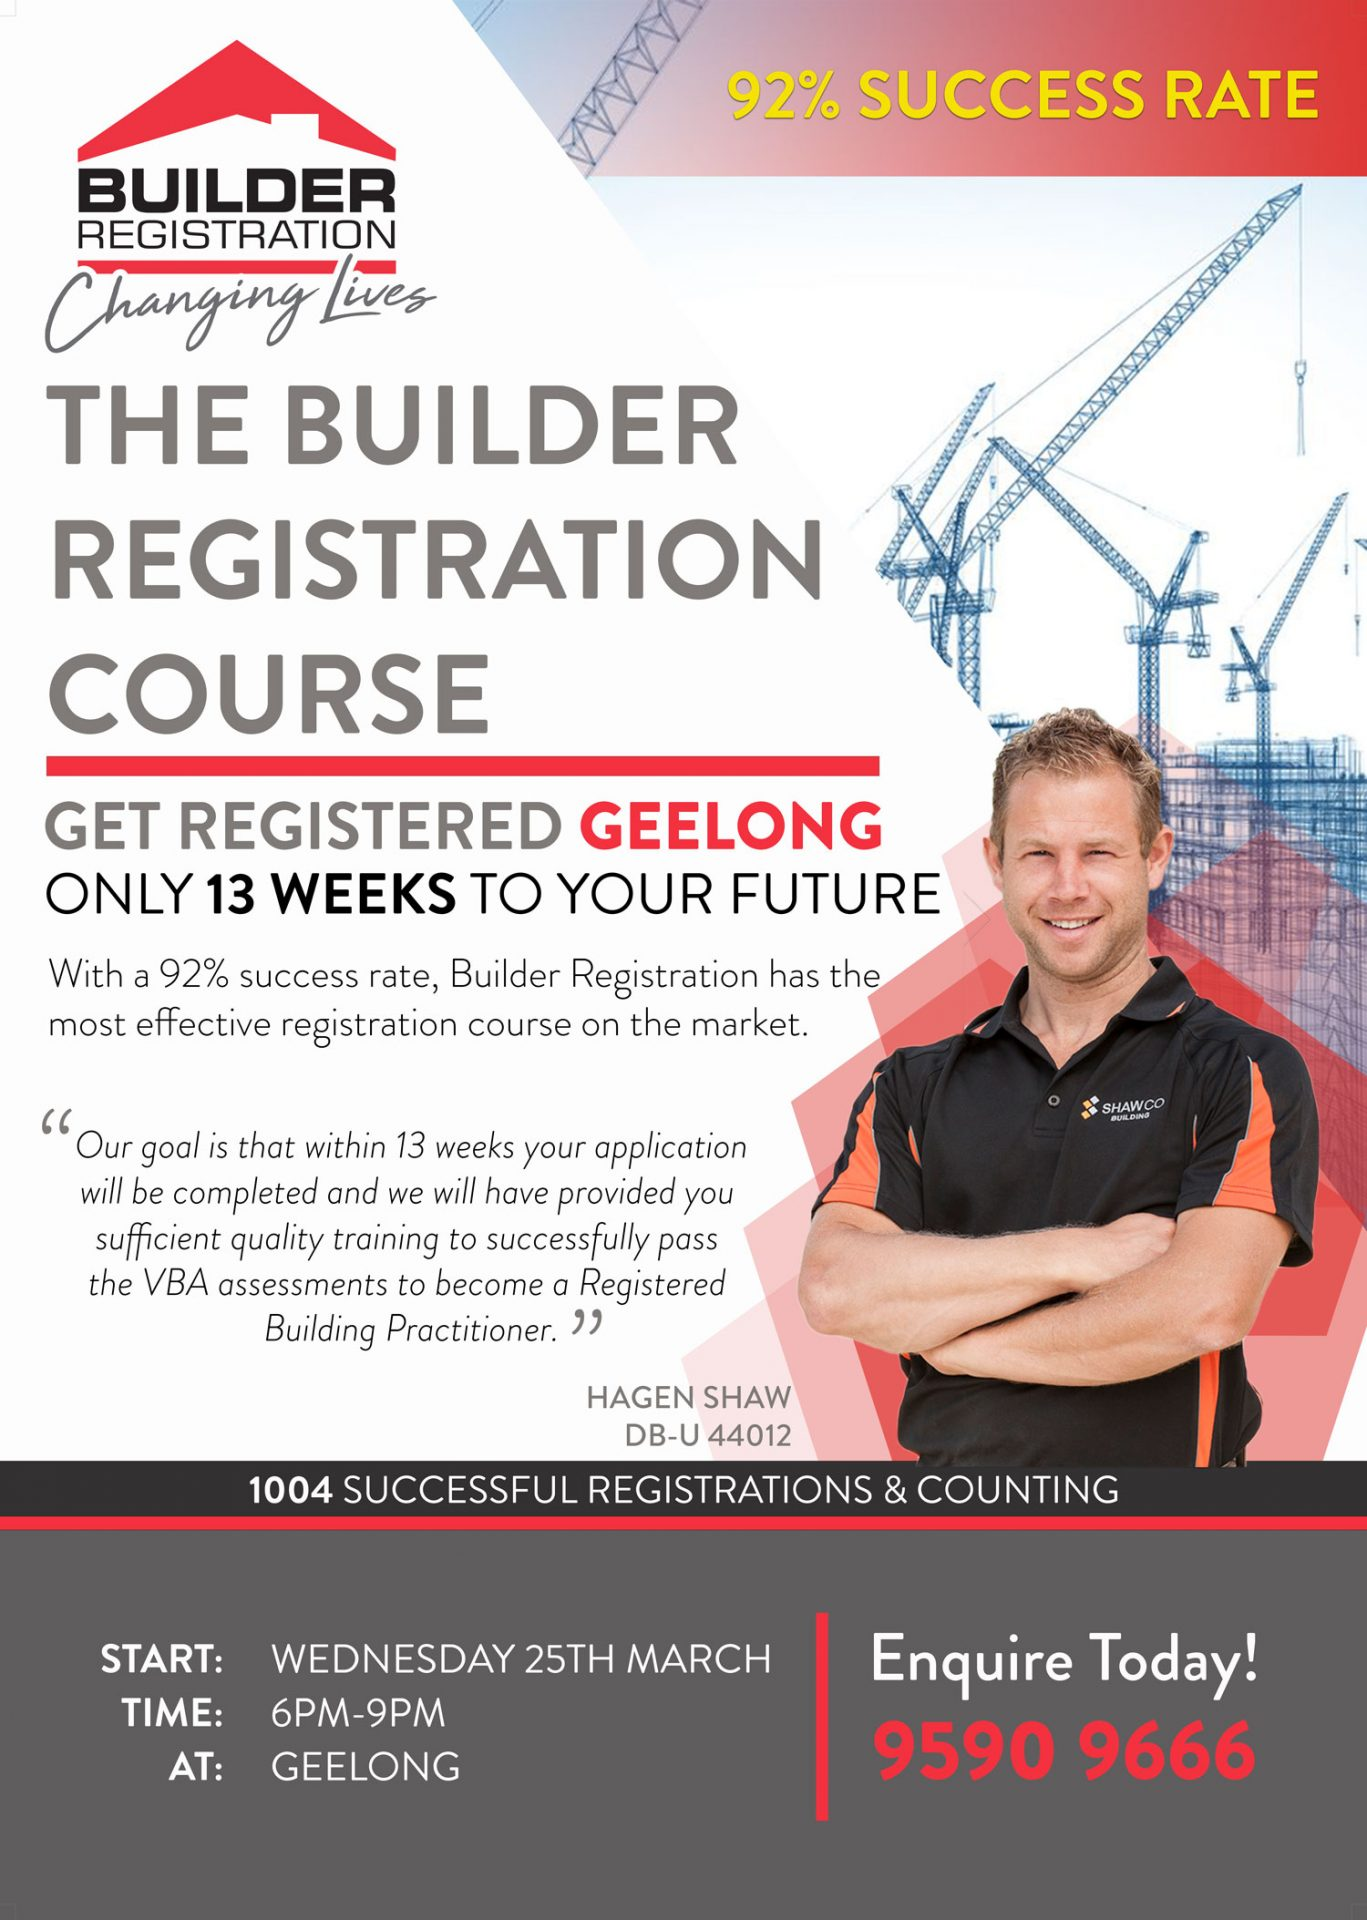 Get-Registered-Flyer-Print-Ready-GEELONG